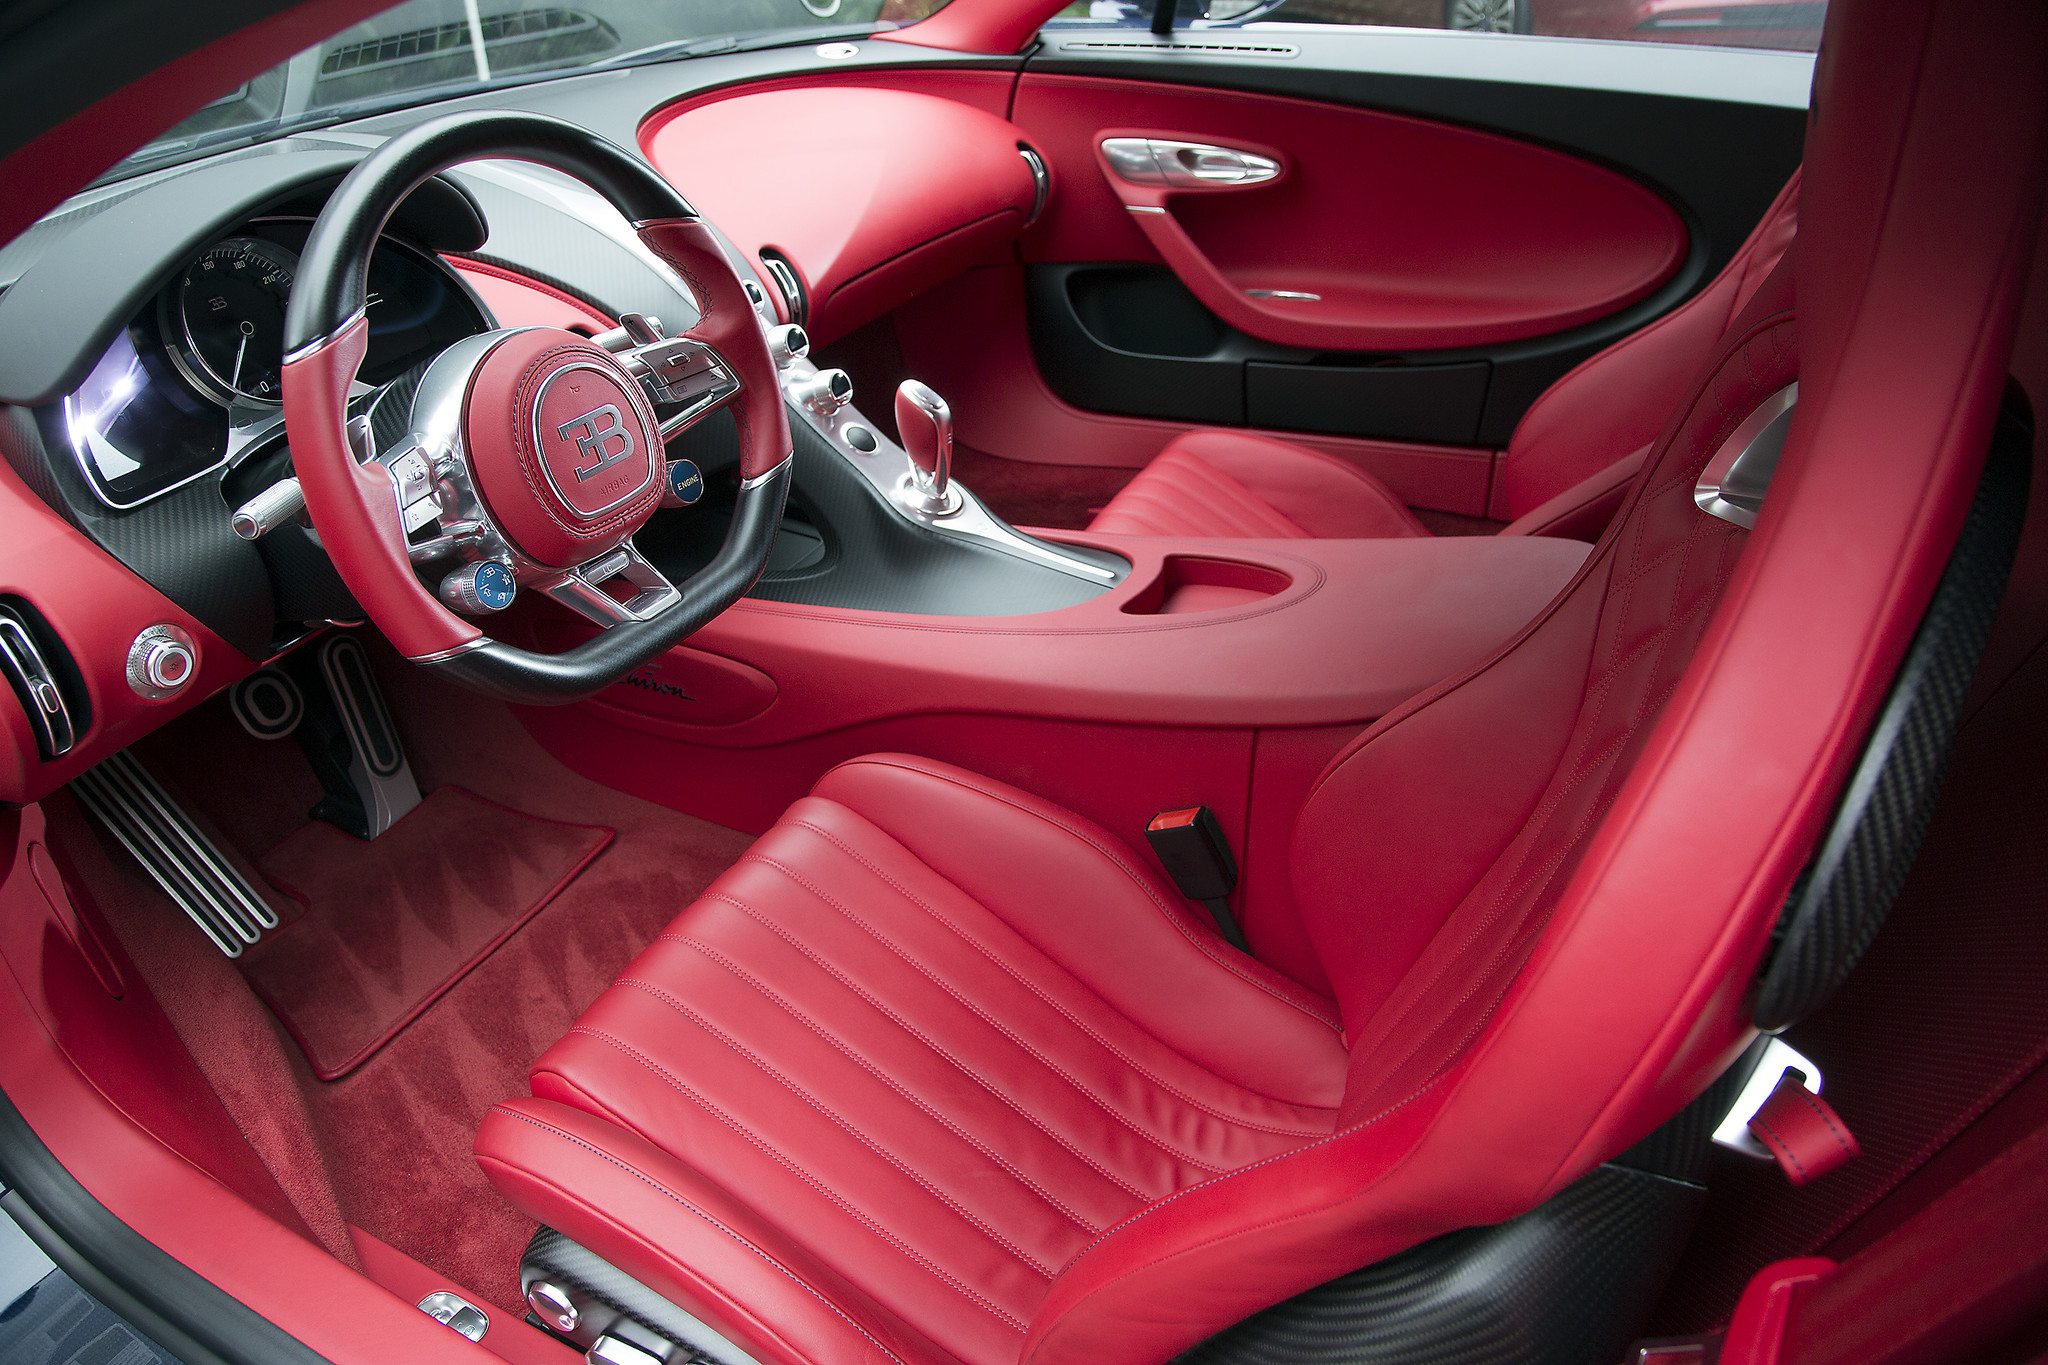 The interior of the Bugatti Chiron is available in 31 leather colors. Each hand-stitched interior requires 16 hides to complete.